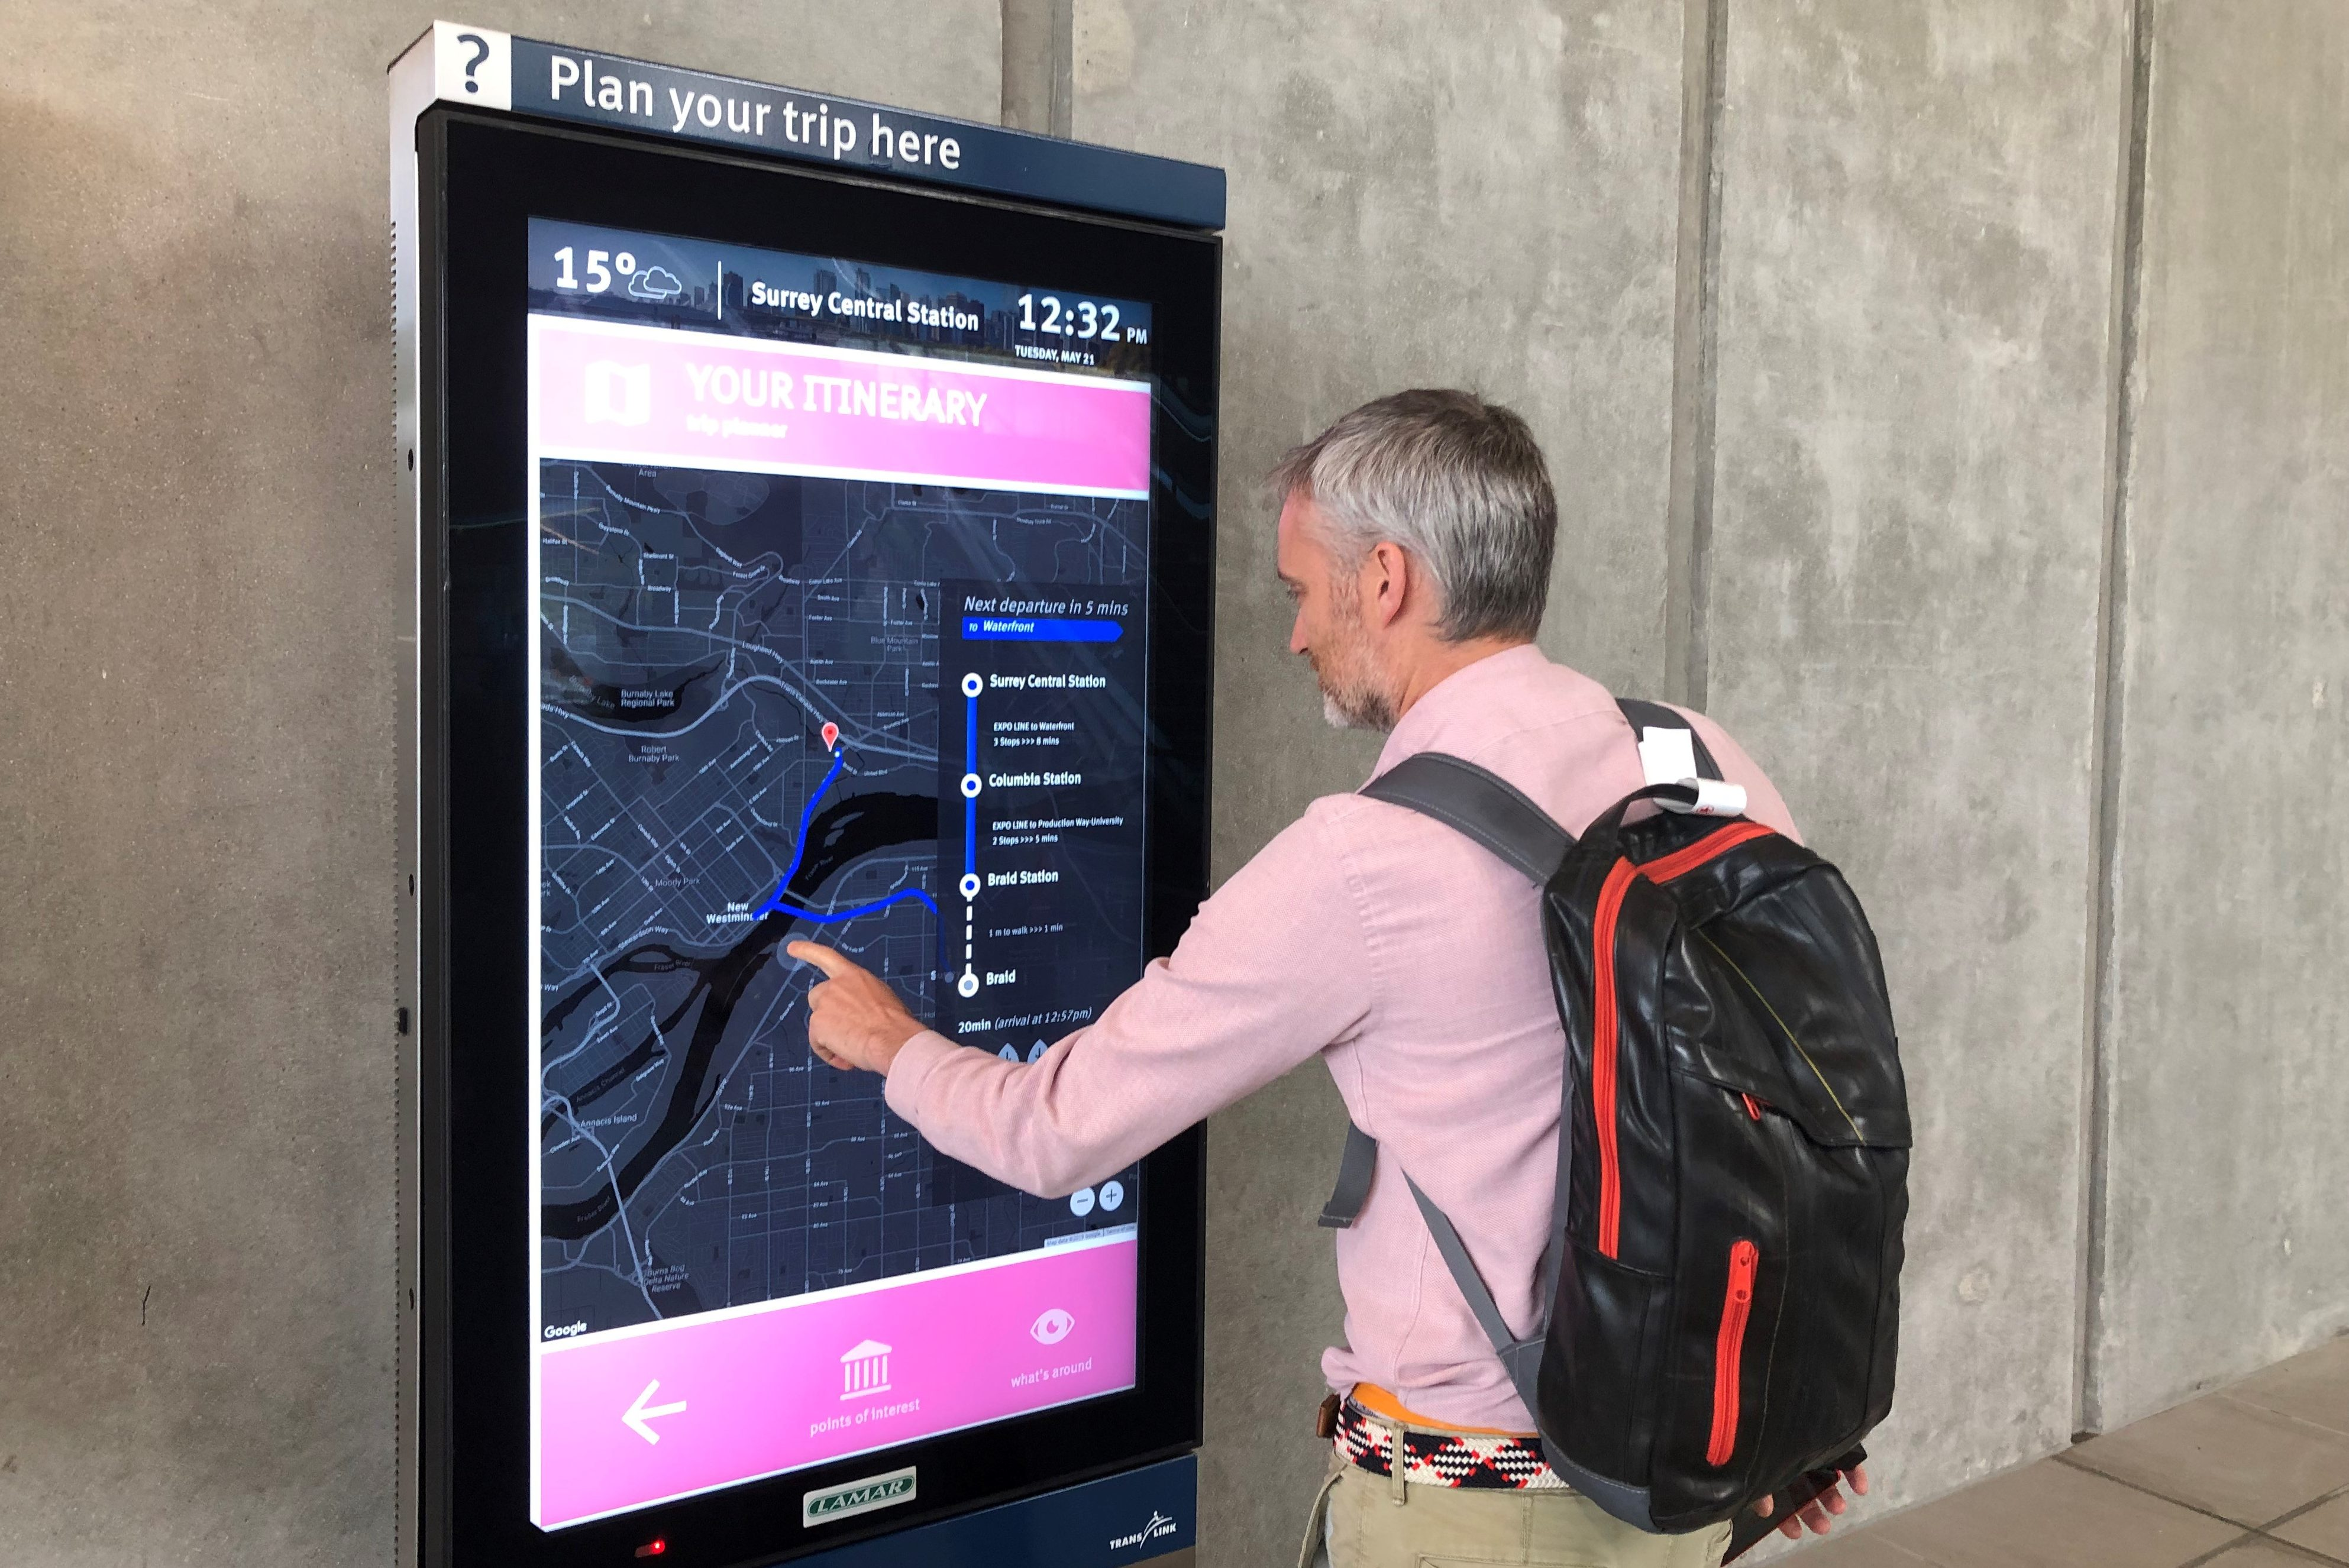 New TransLink touch-screens aim to help commuters with trip planning - NEWS  1130